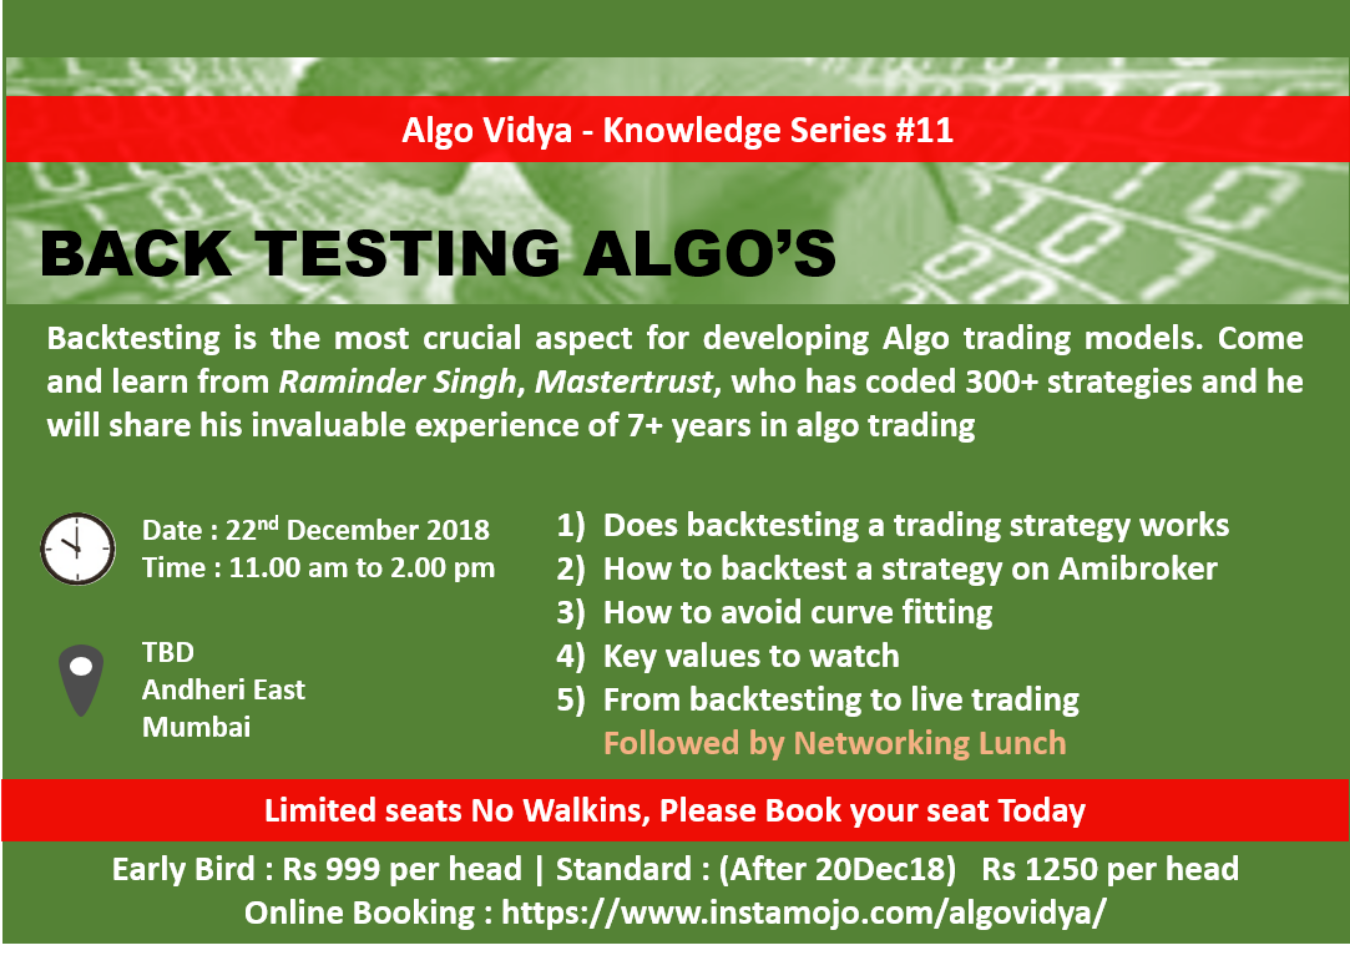 Back Testing Algo's Tickets by Raminder, 16 Dec, 2018, Andheri Event